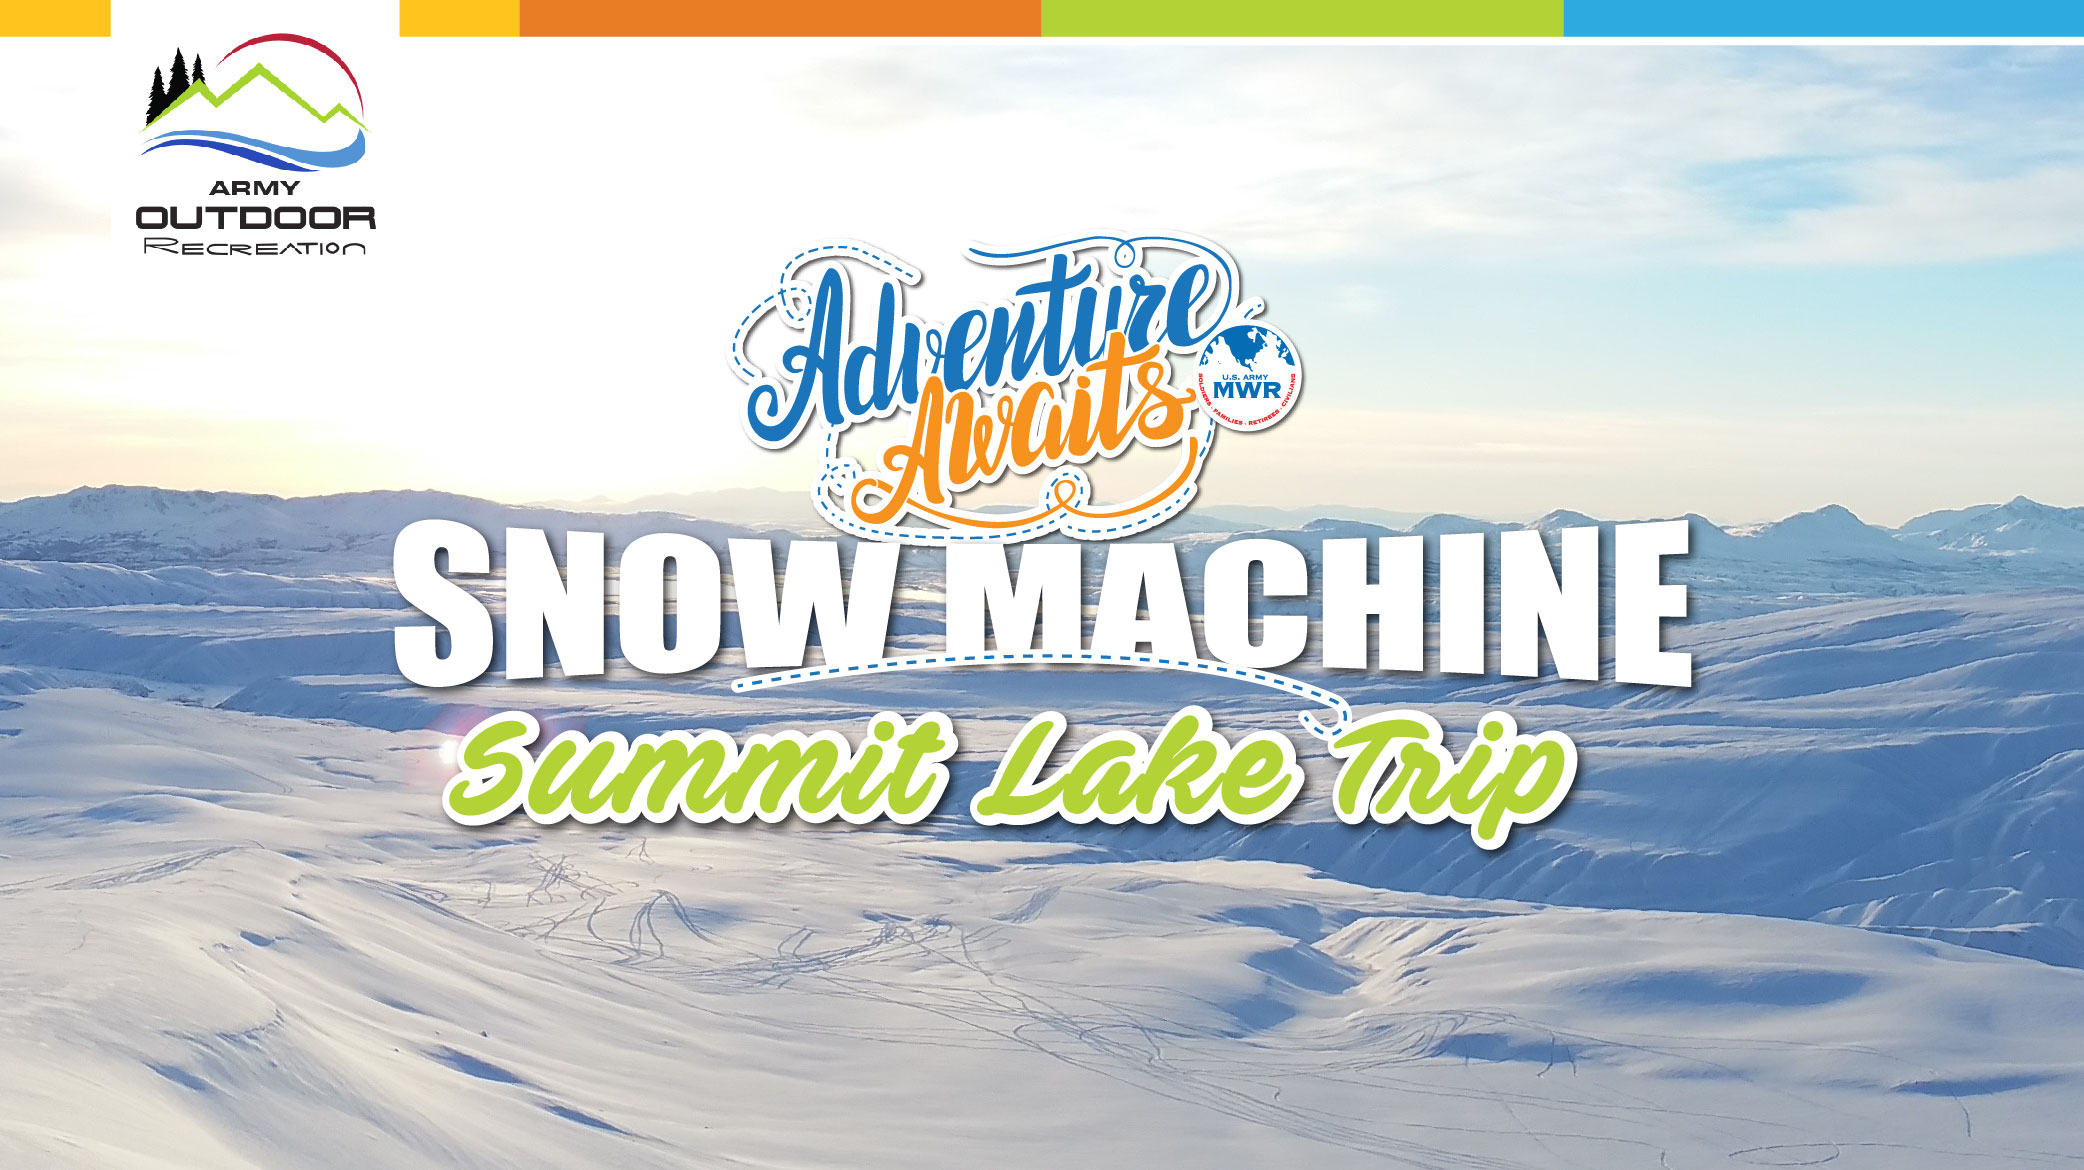 Snowmachine Trip to Summit Lake